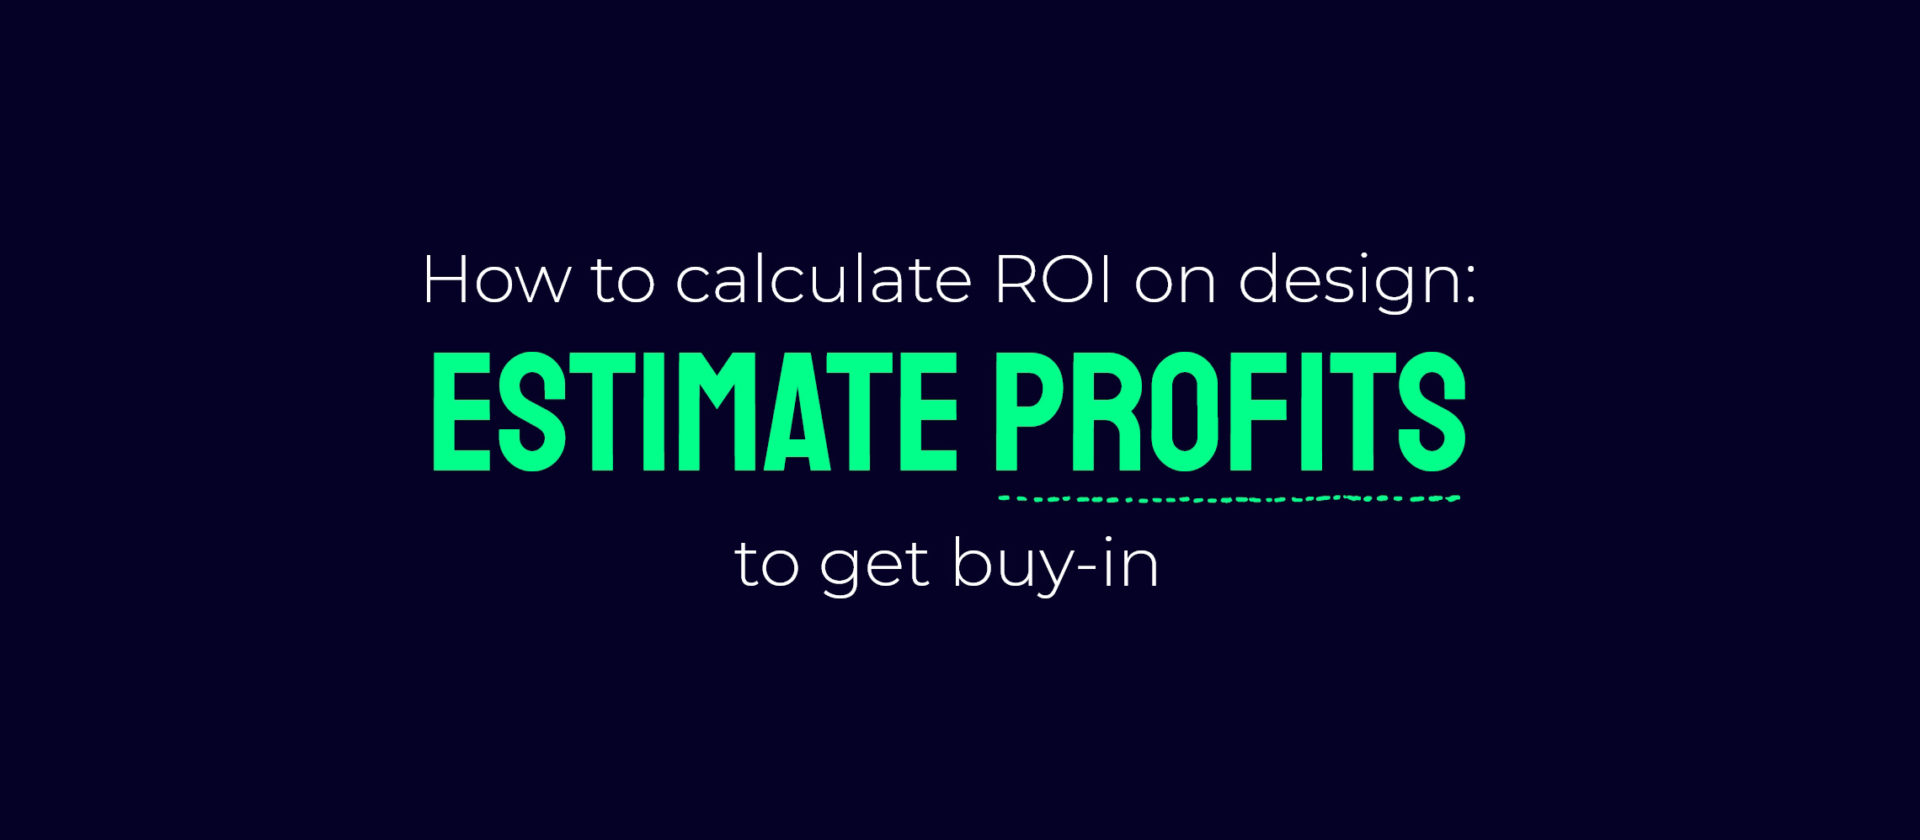 How to calculate ROI on design: estimate profits to get buy-in.